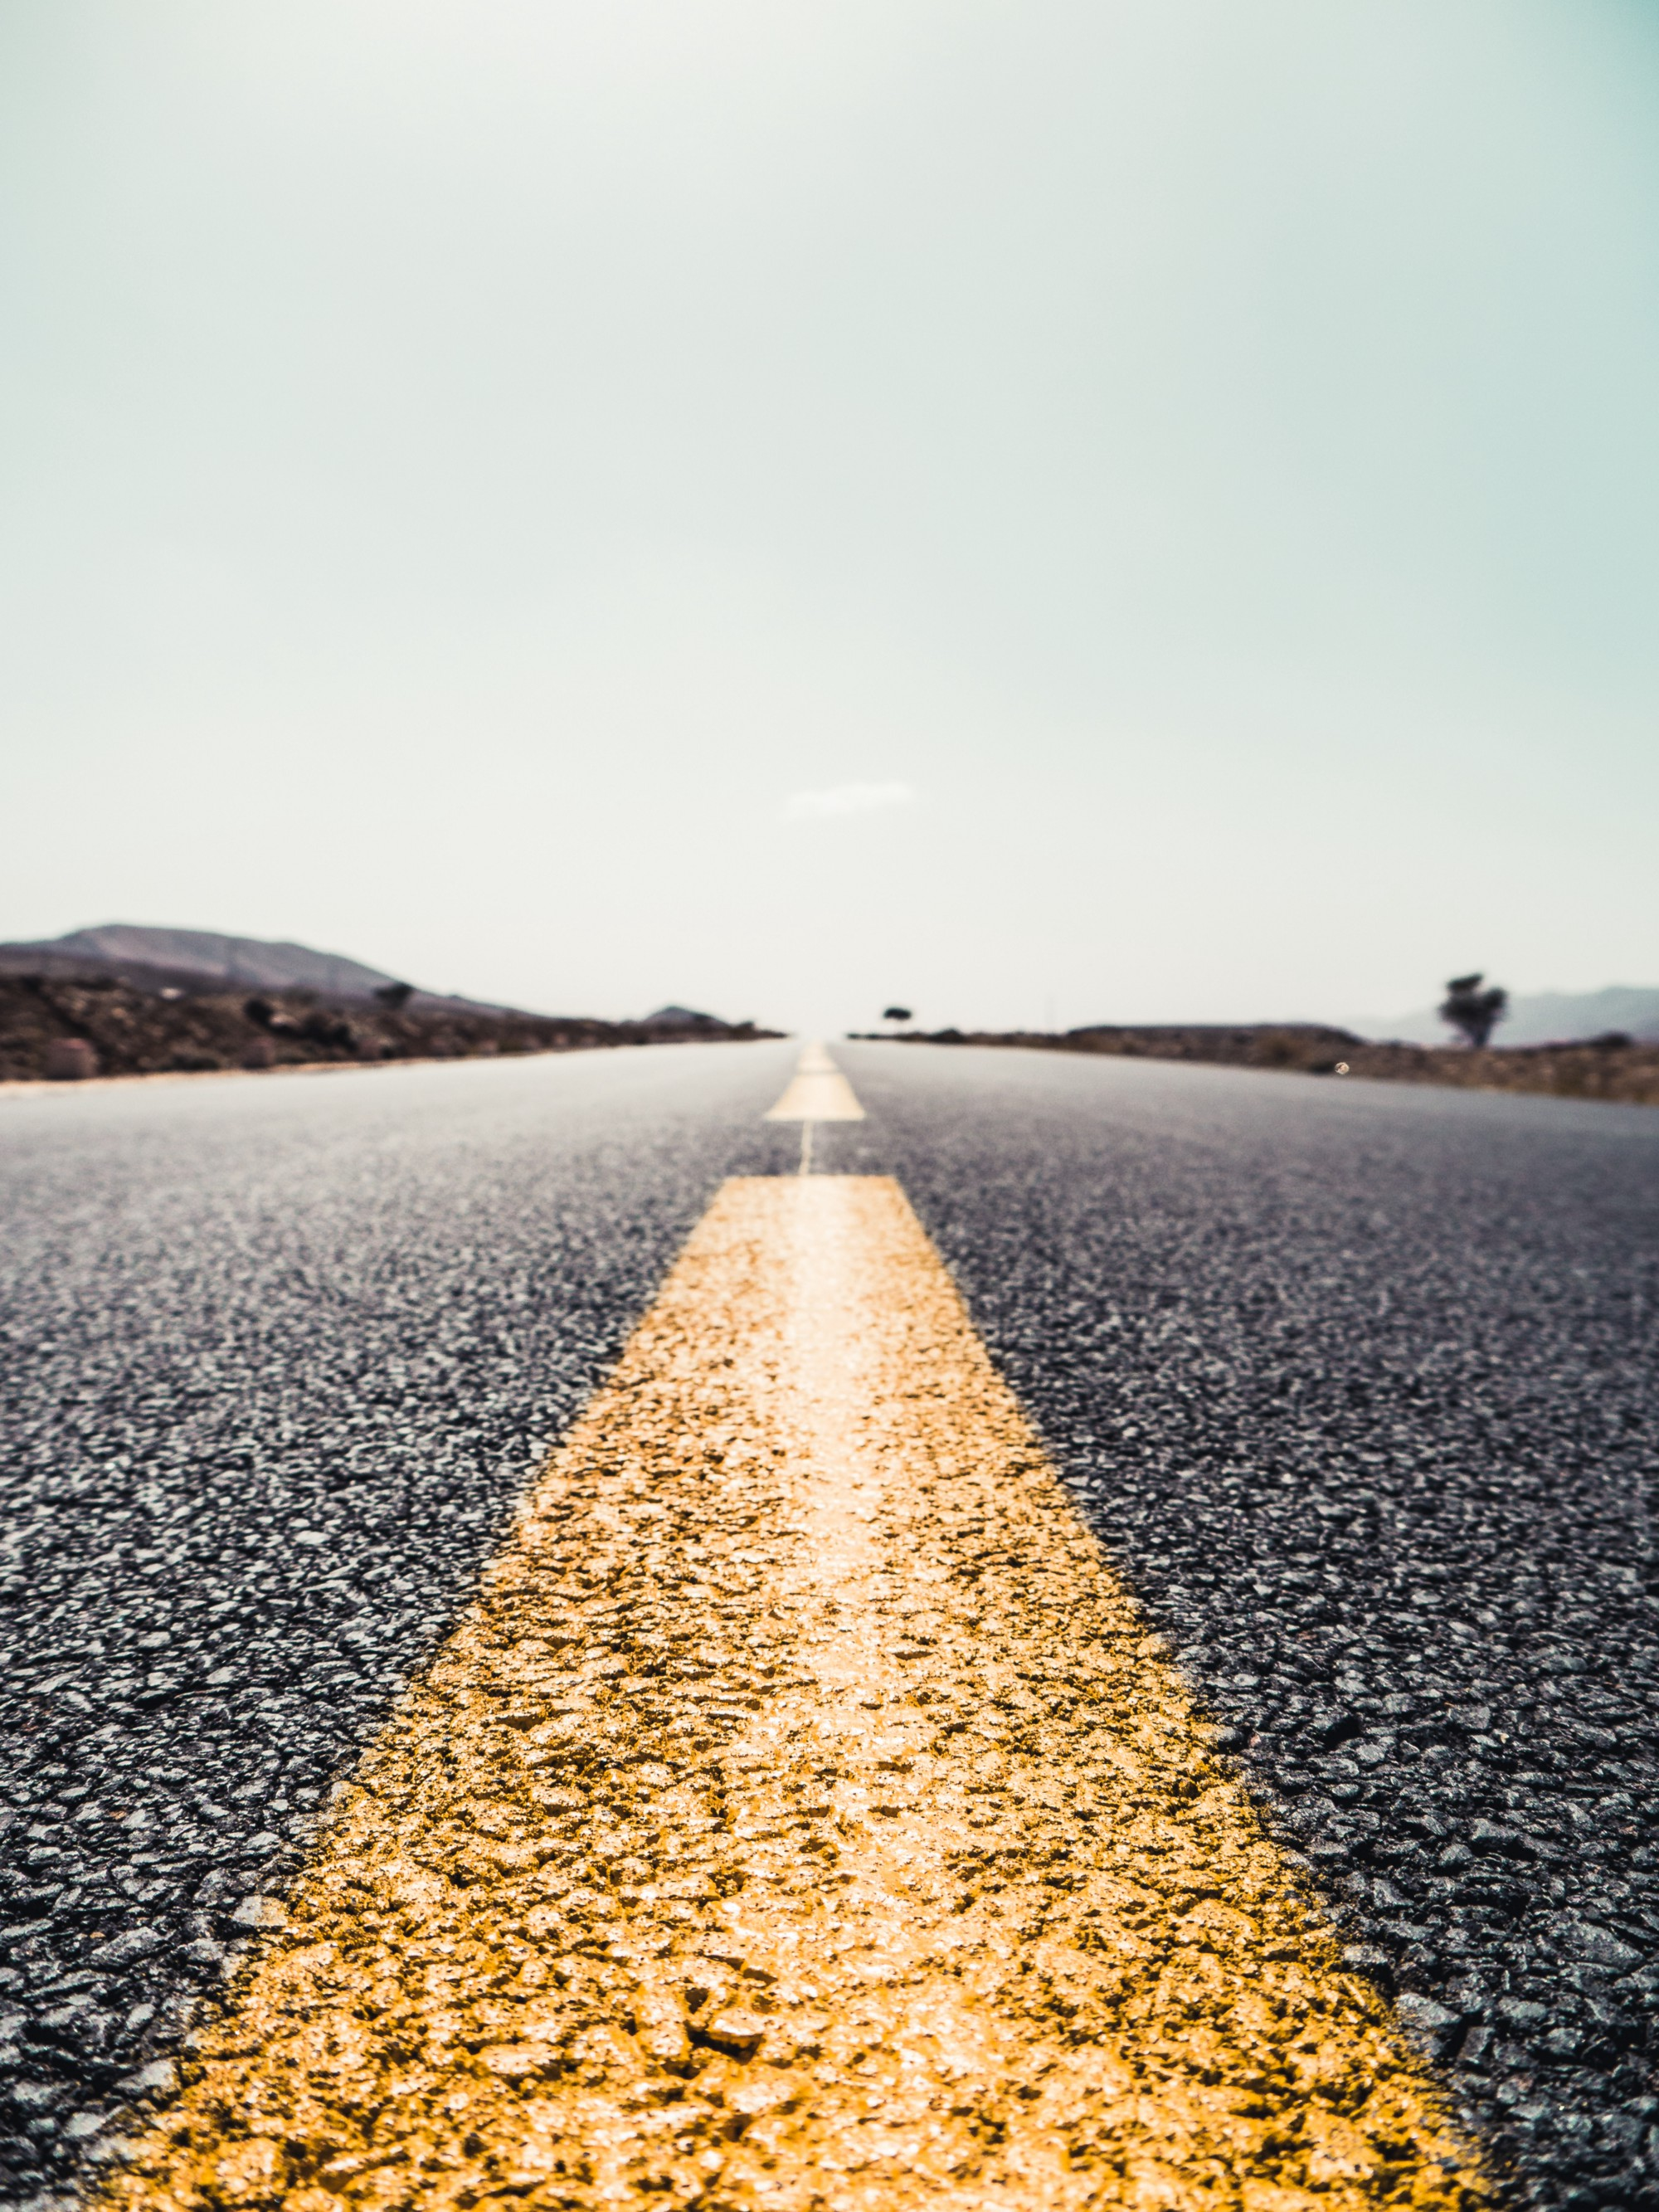 Image of the yellow lines at the center of a long, empty road with mountains on either side.